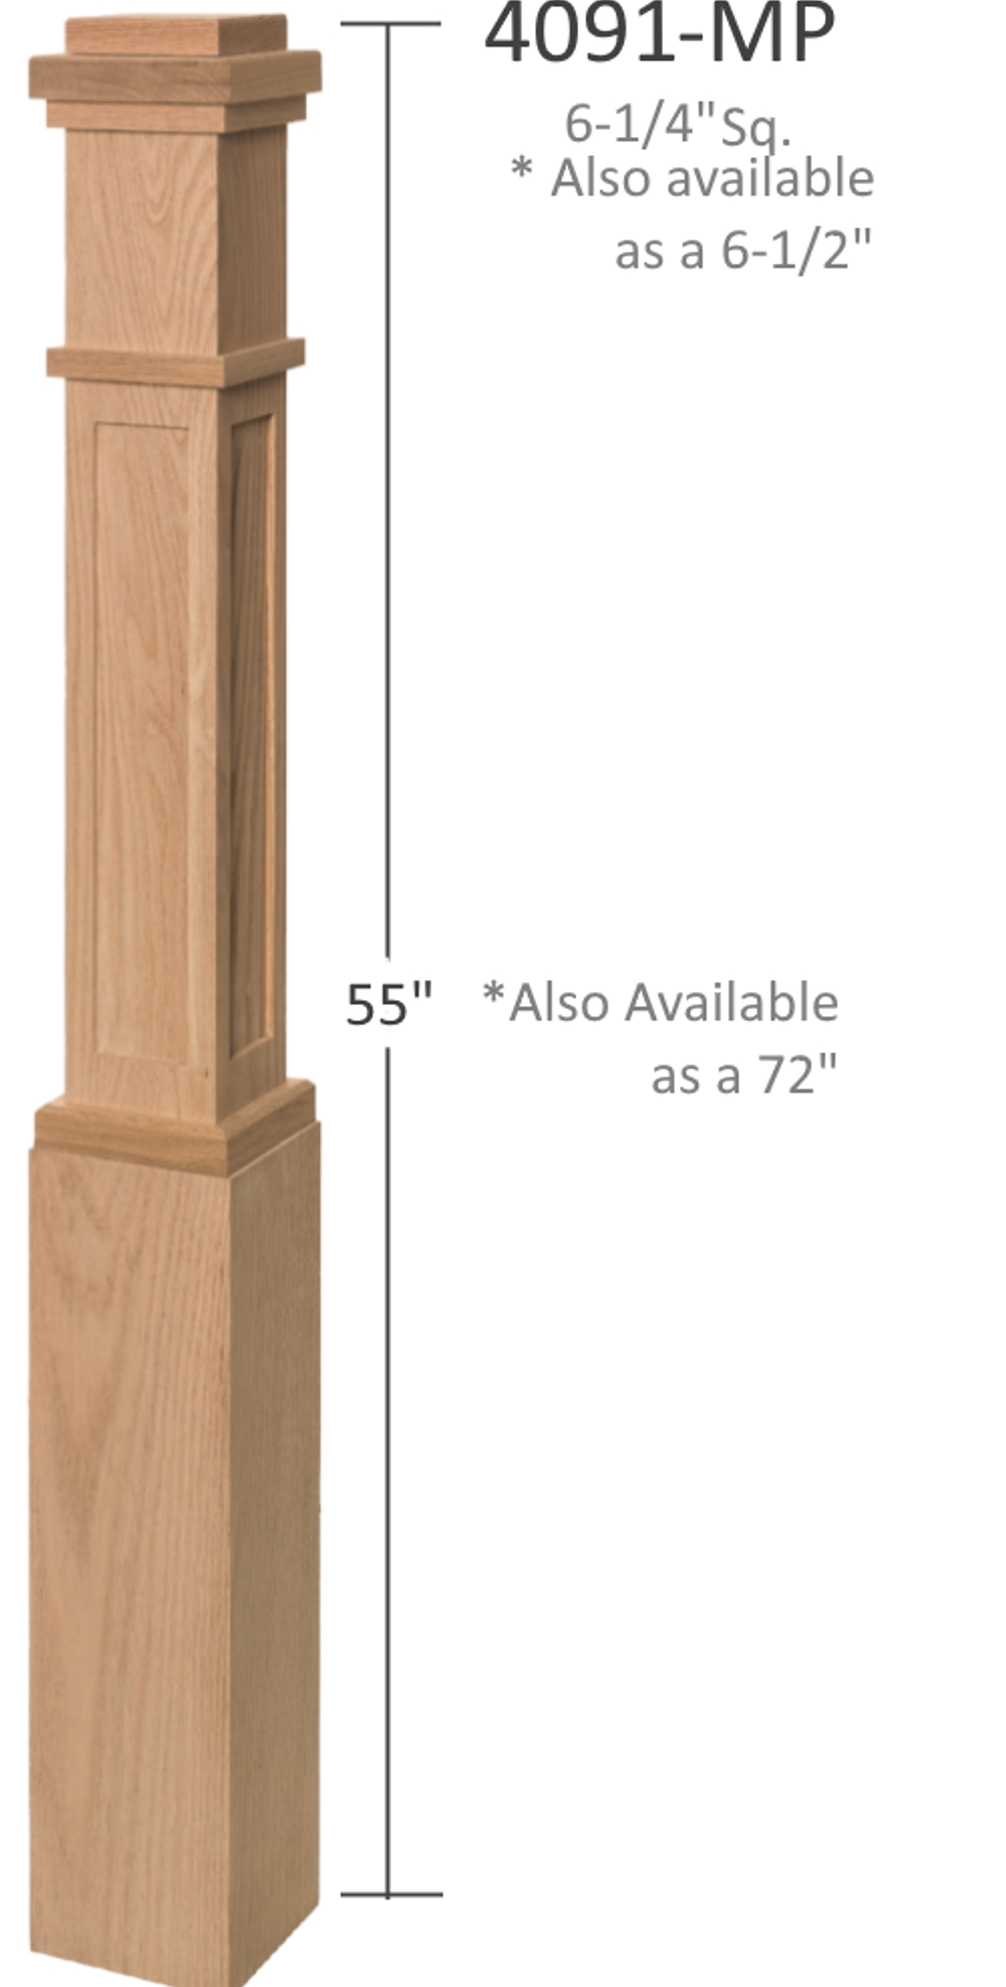 4091 Series Wood Box Newel Box Newels In Red Oak Maple Poplar   Craftsman Style Newel Post   Shaker   Construction   Colonial Elegance   Antique   1930 Style